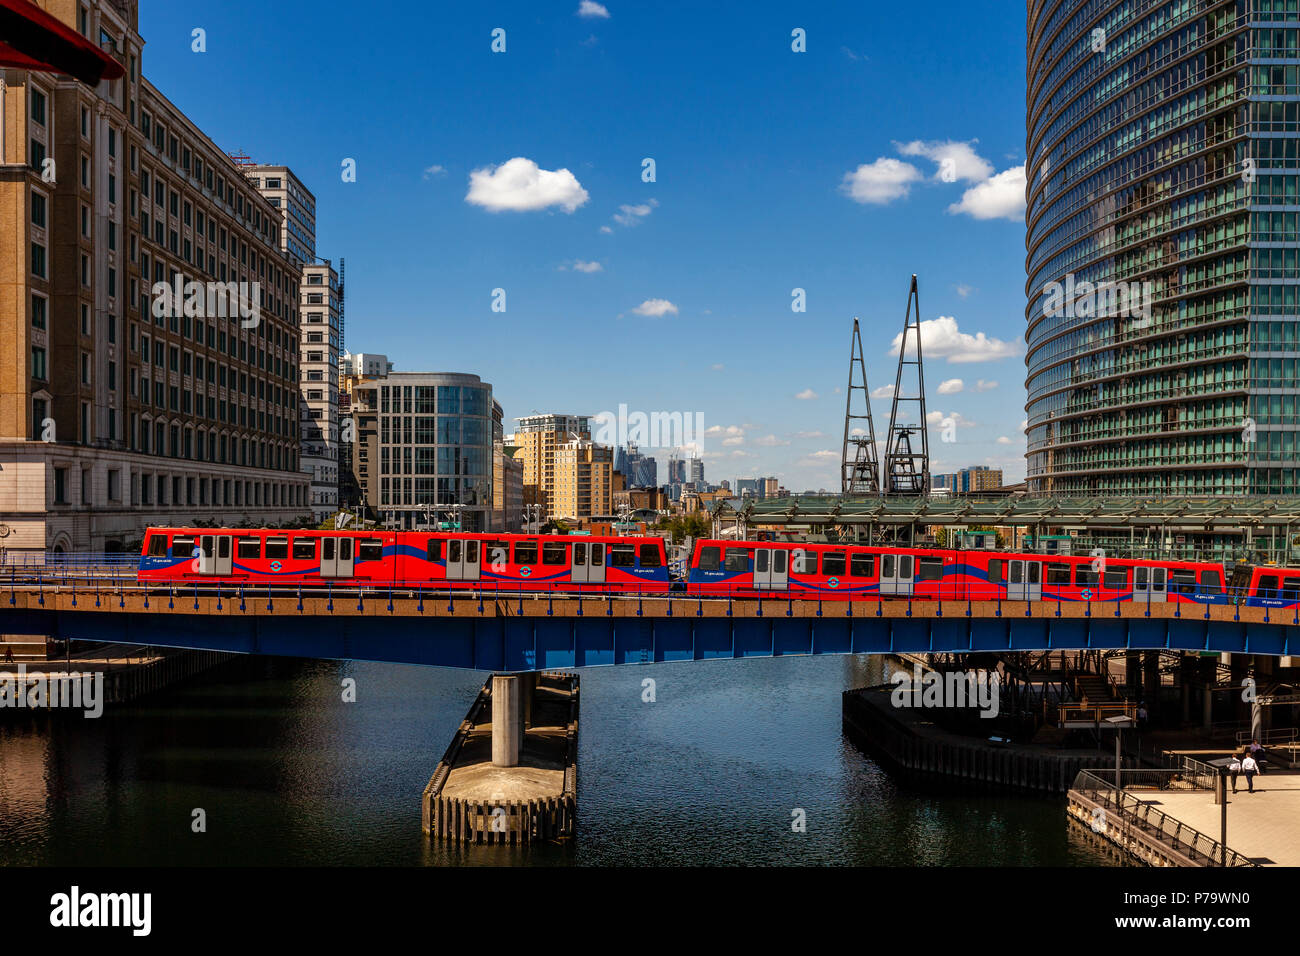 A Docklands Light Railway Train Crossing The River At Canary Wharf, London, United Kingdom - Stock Image